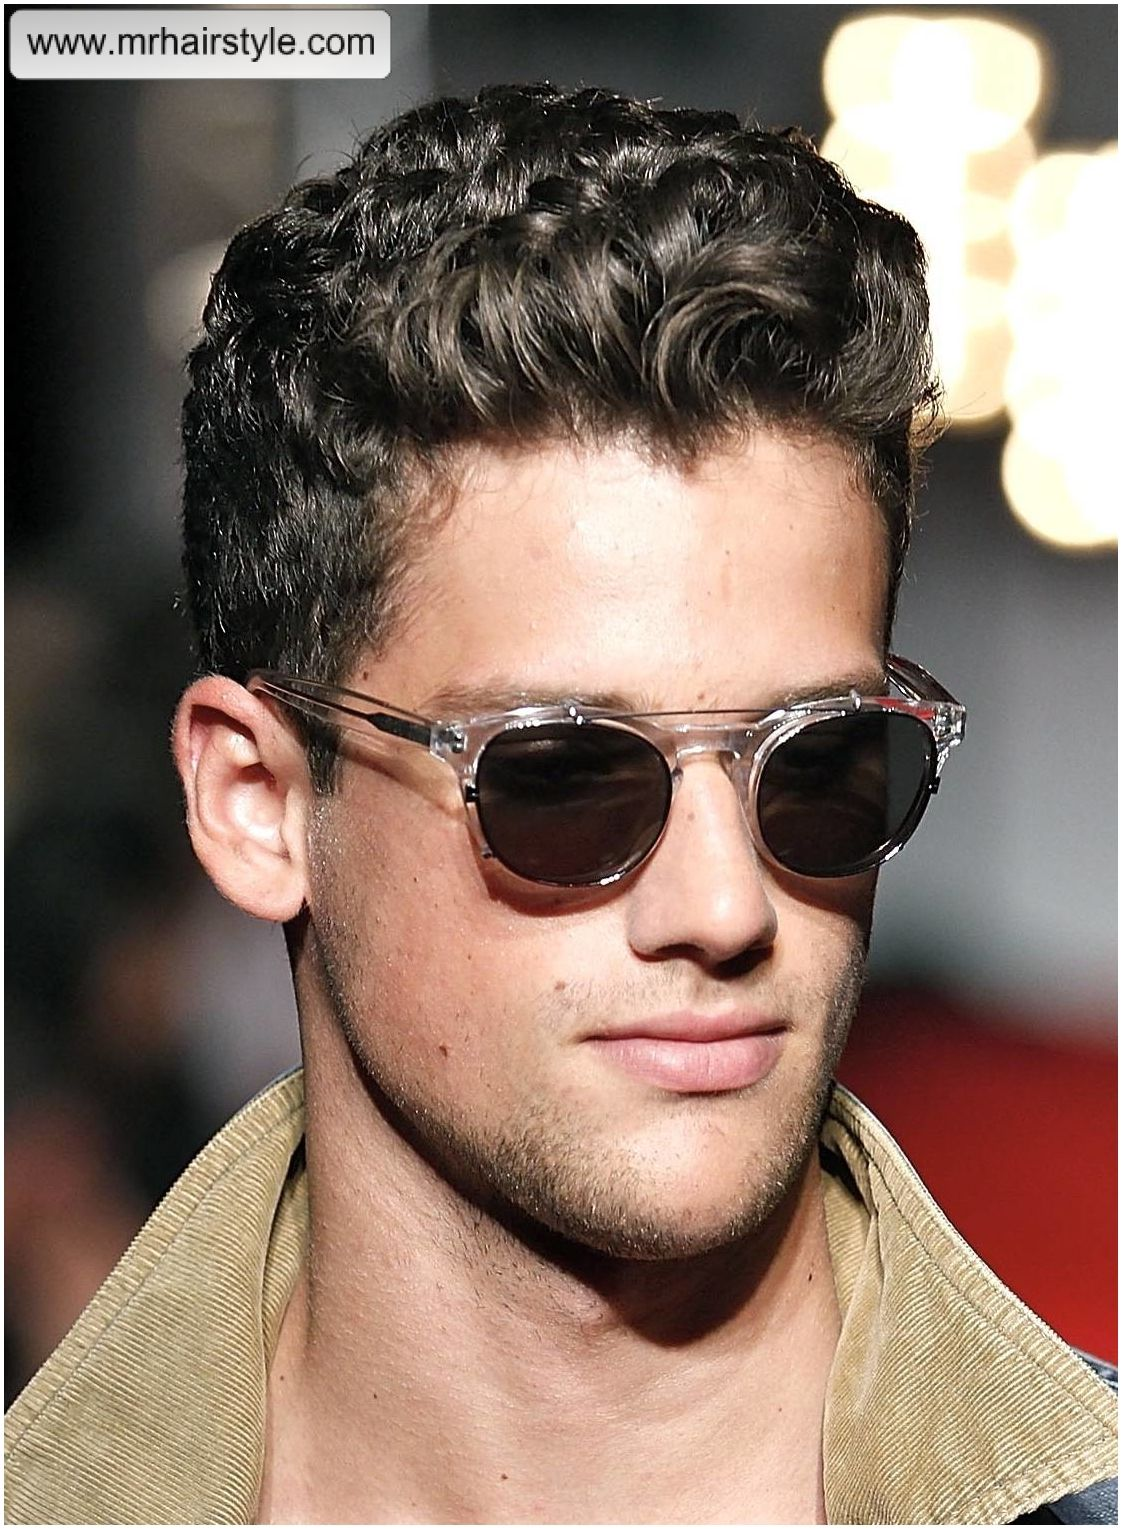 20 Curly Hairstyles for men 2016.mens-curly-hairstyle.jpeg ... | Curly hair  men, Male haircuts curly, Thick hair styles